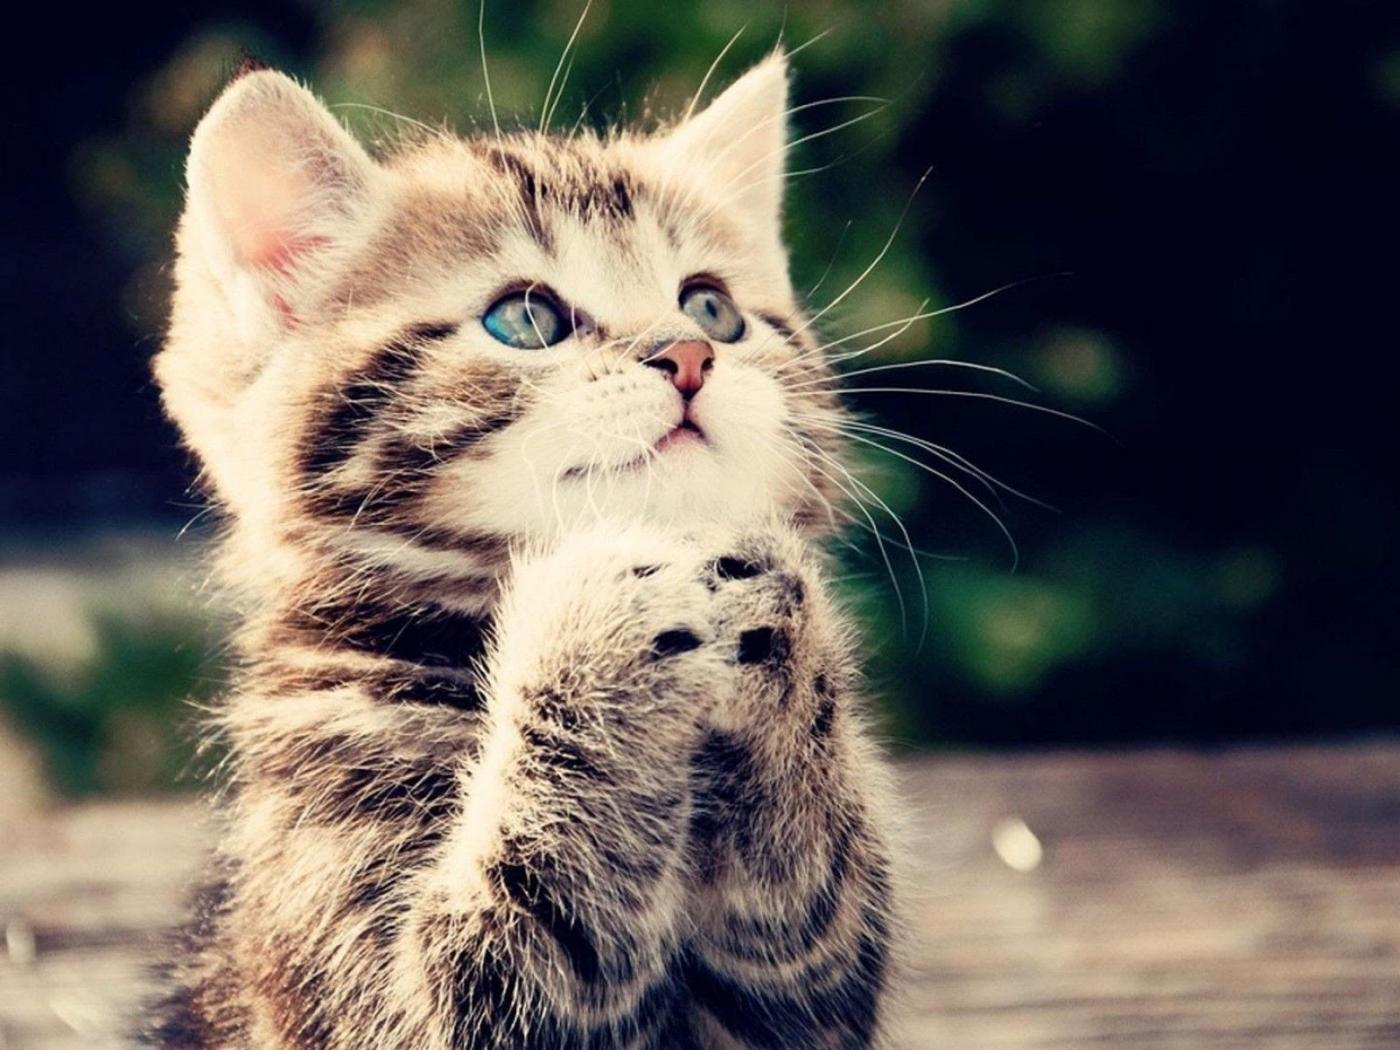 Cute Animals Wallpapers Free Download: Funny Animal Wallpapers Free Download With Praying Kitten